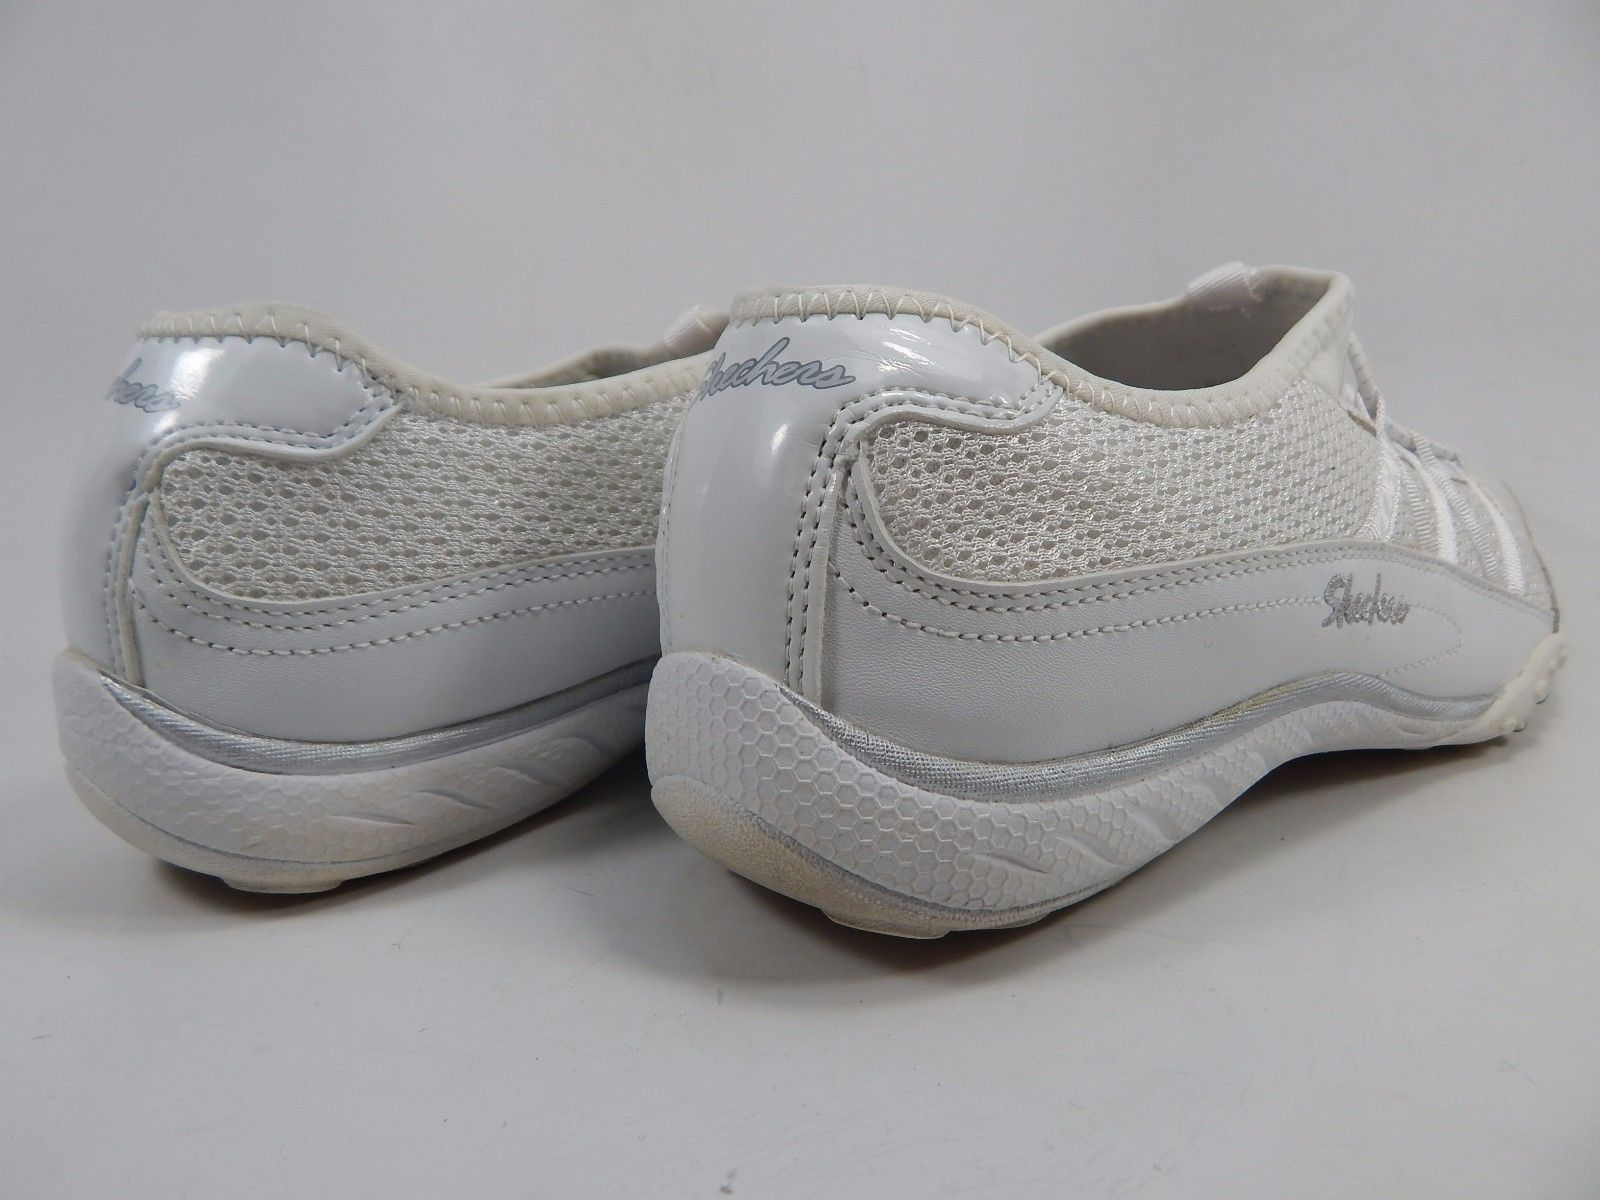 Skechers Relaxed Fit Breath Easy Relaxation Women's Shoes Size US 7.5 M (B)